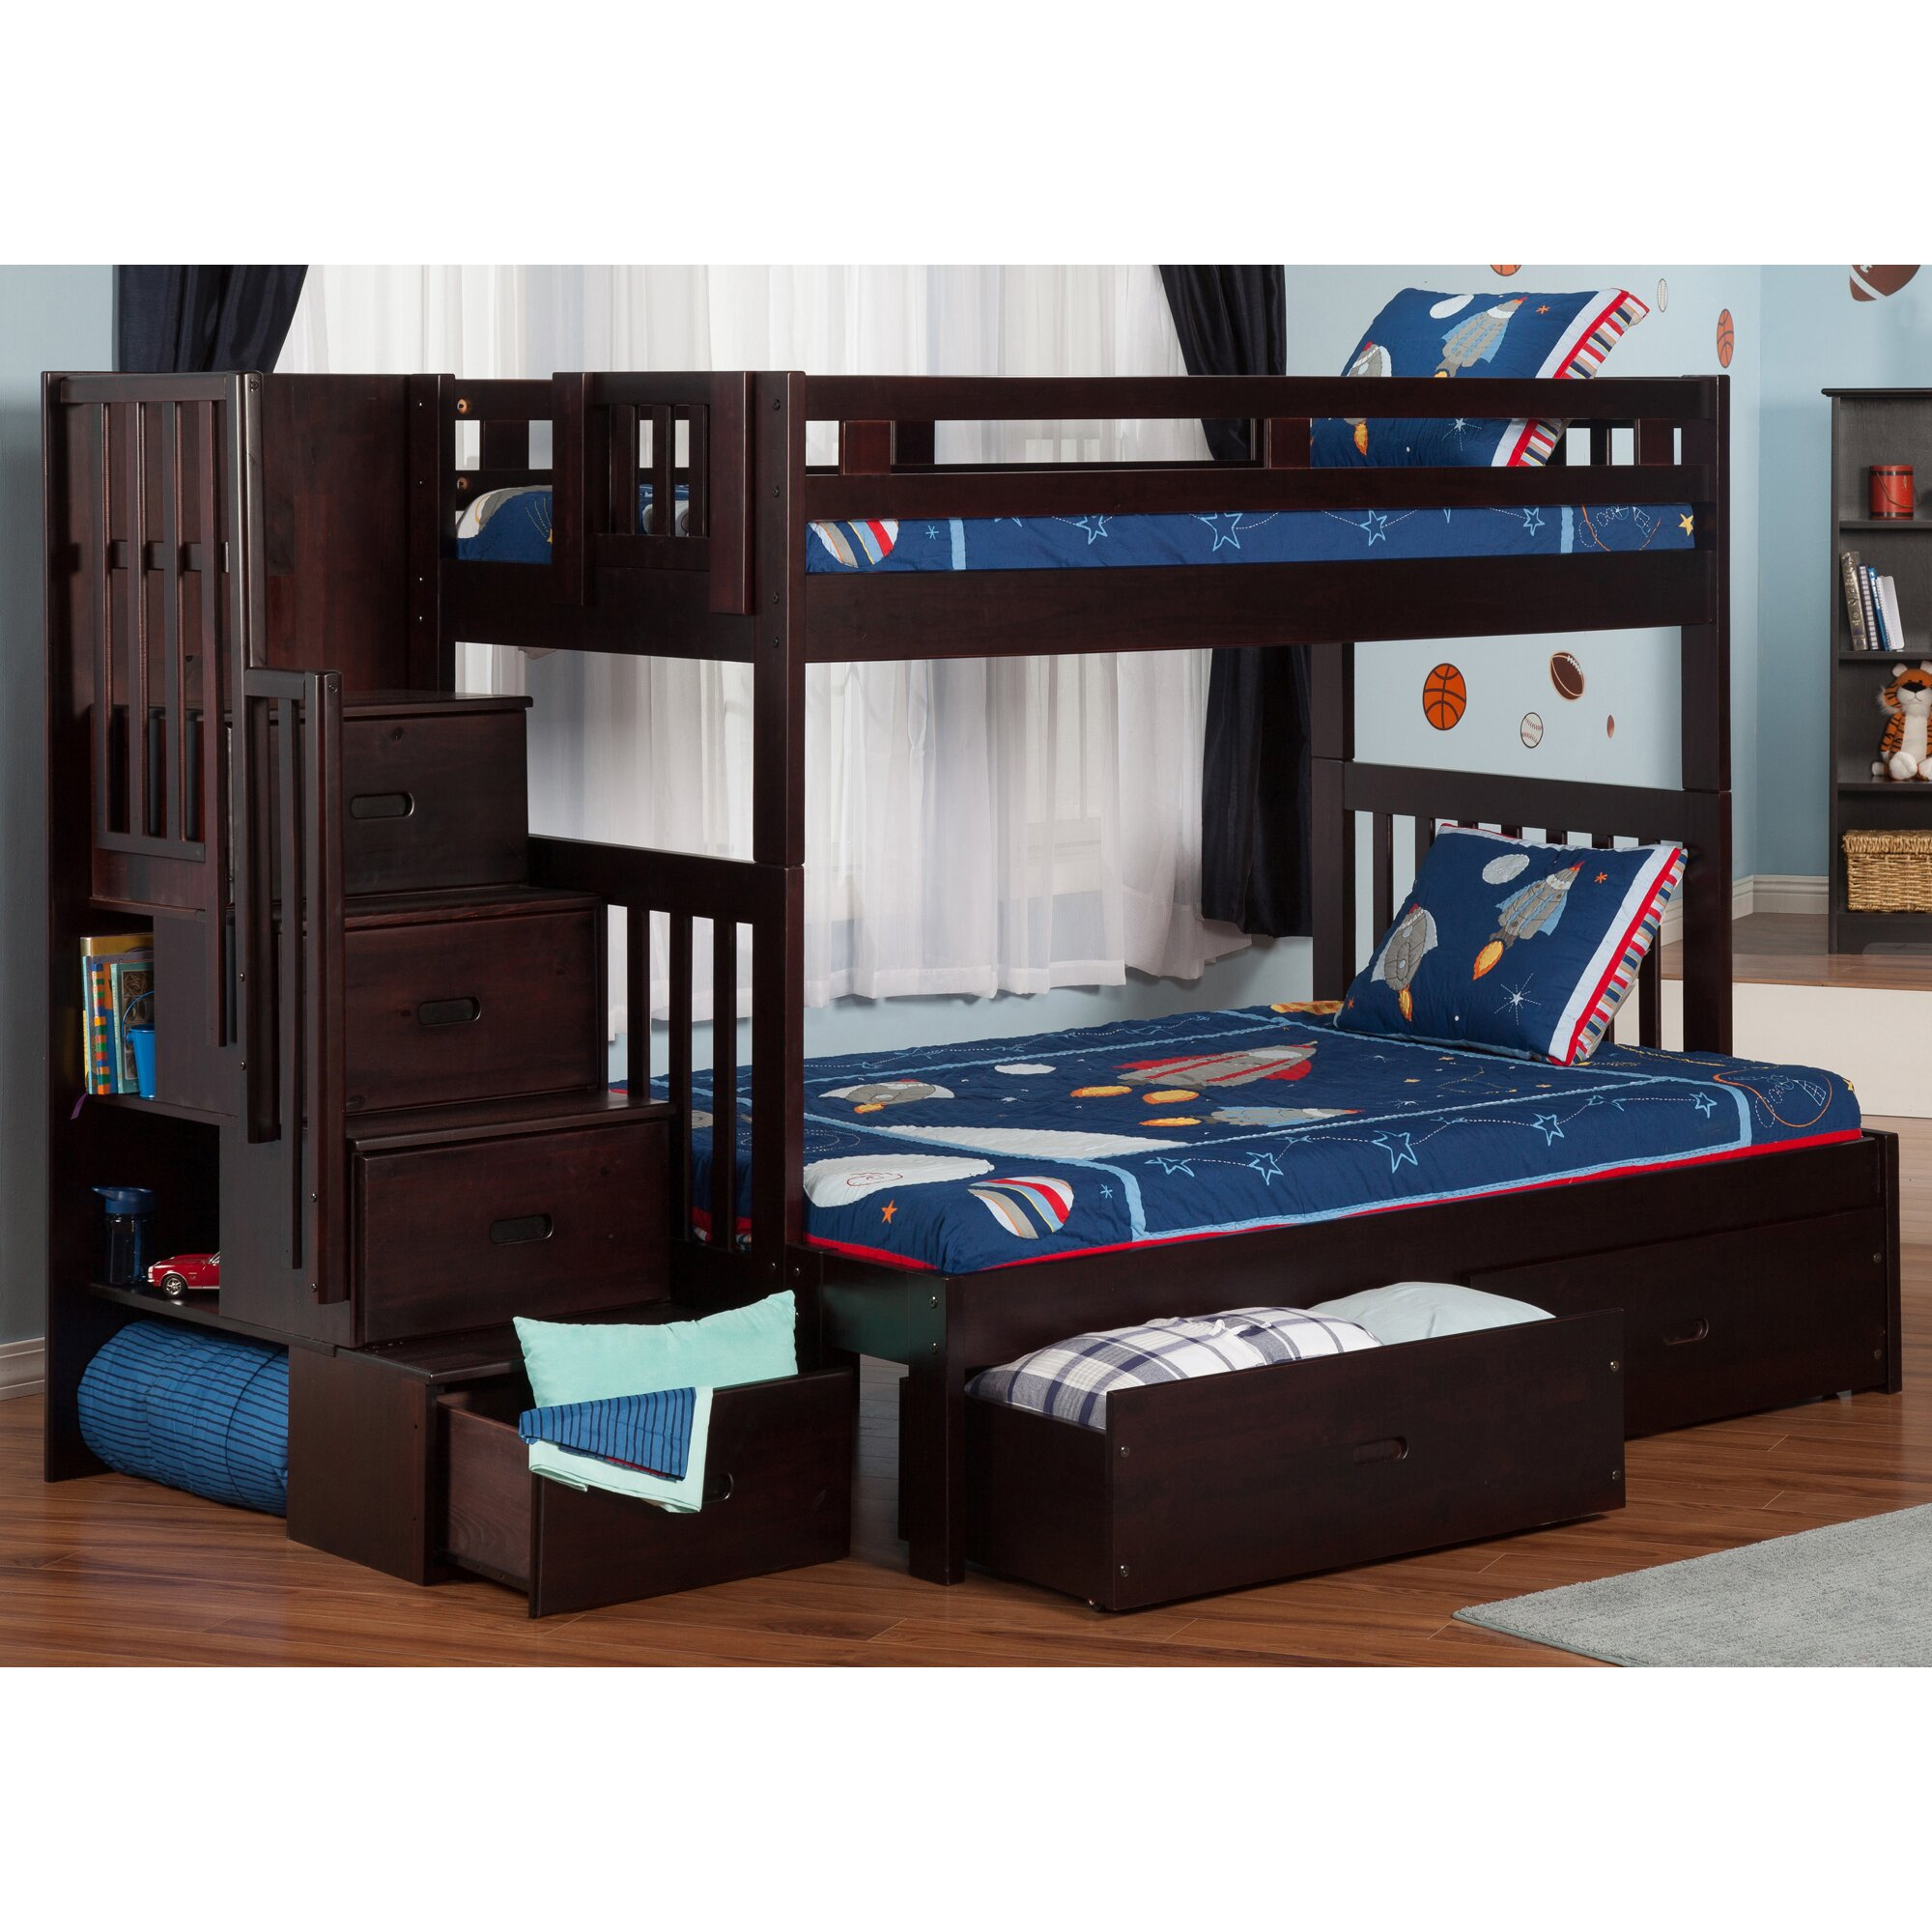 Pine bunk beds with storage - Twin Over Full Bunk Bed With Staircase And Storage